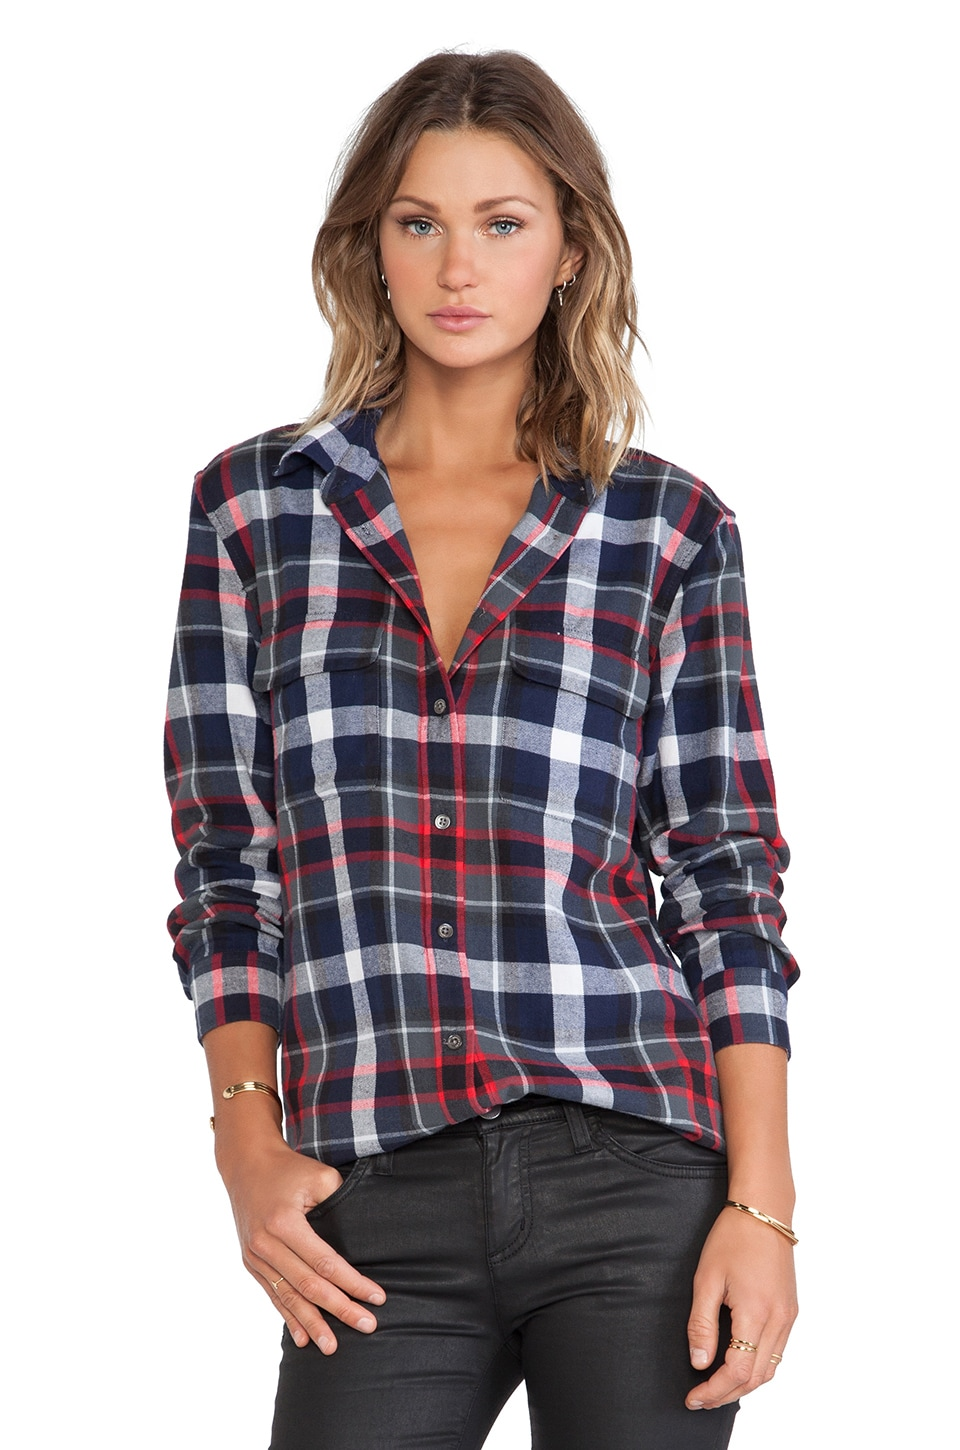 Equipment Signature Plaid Blouse in Peacoat Multi